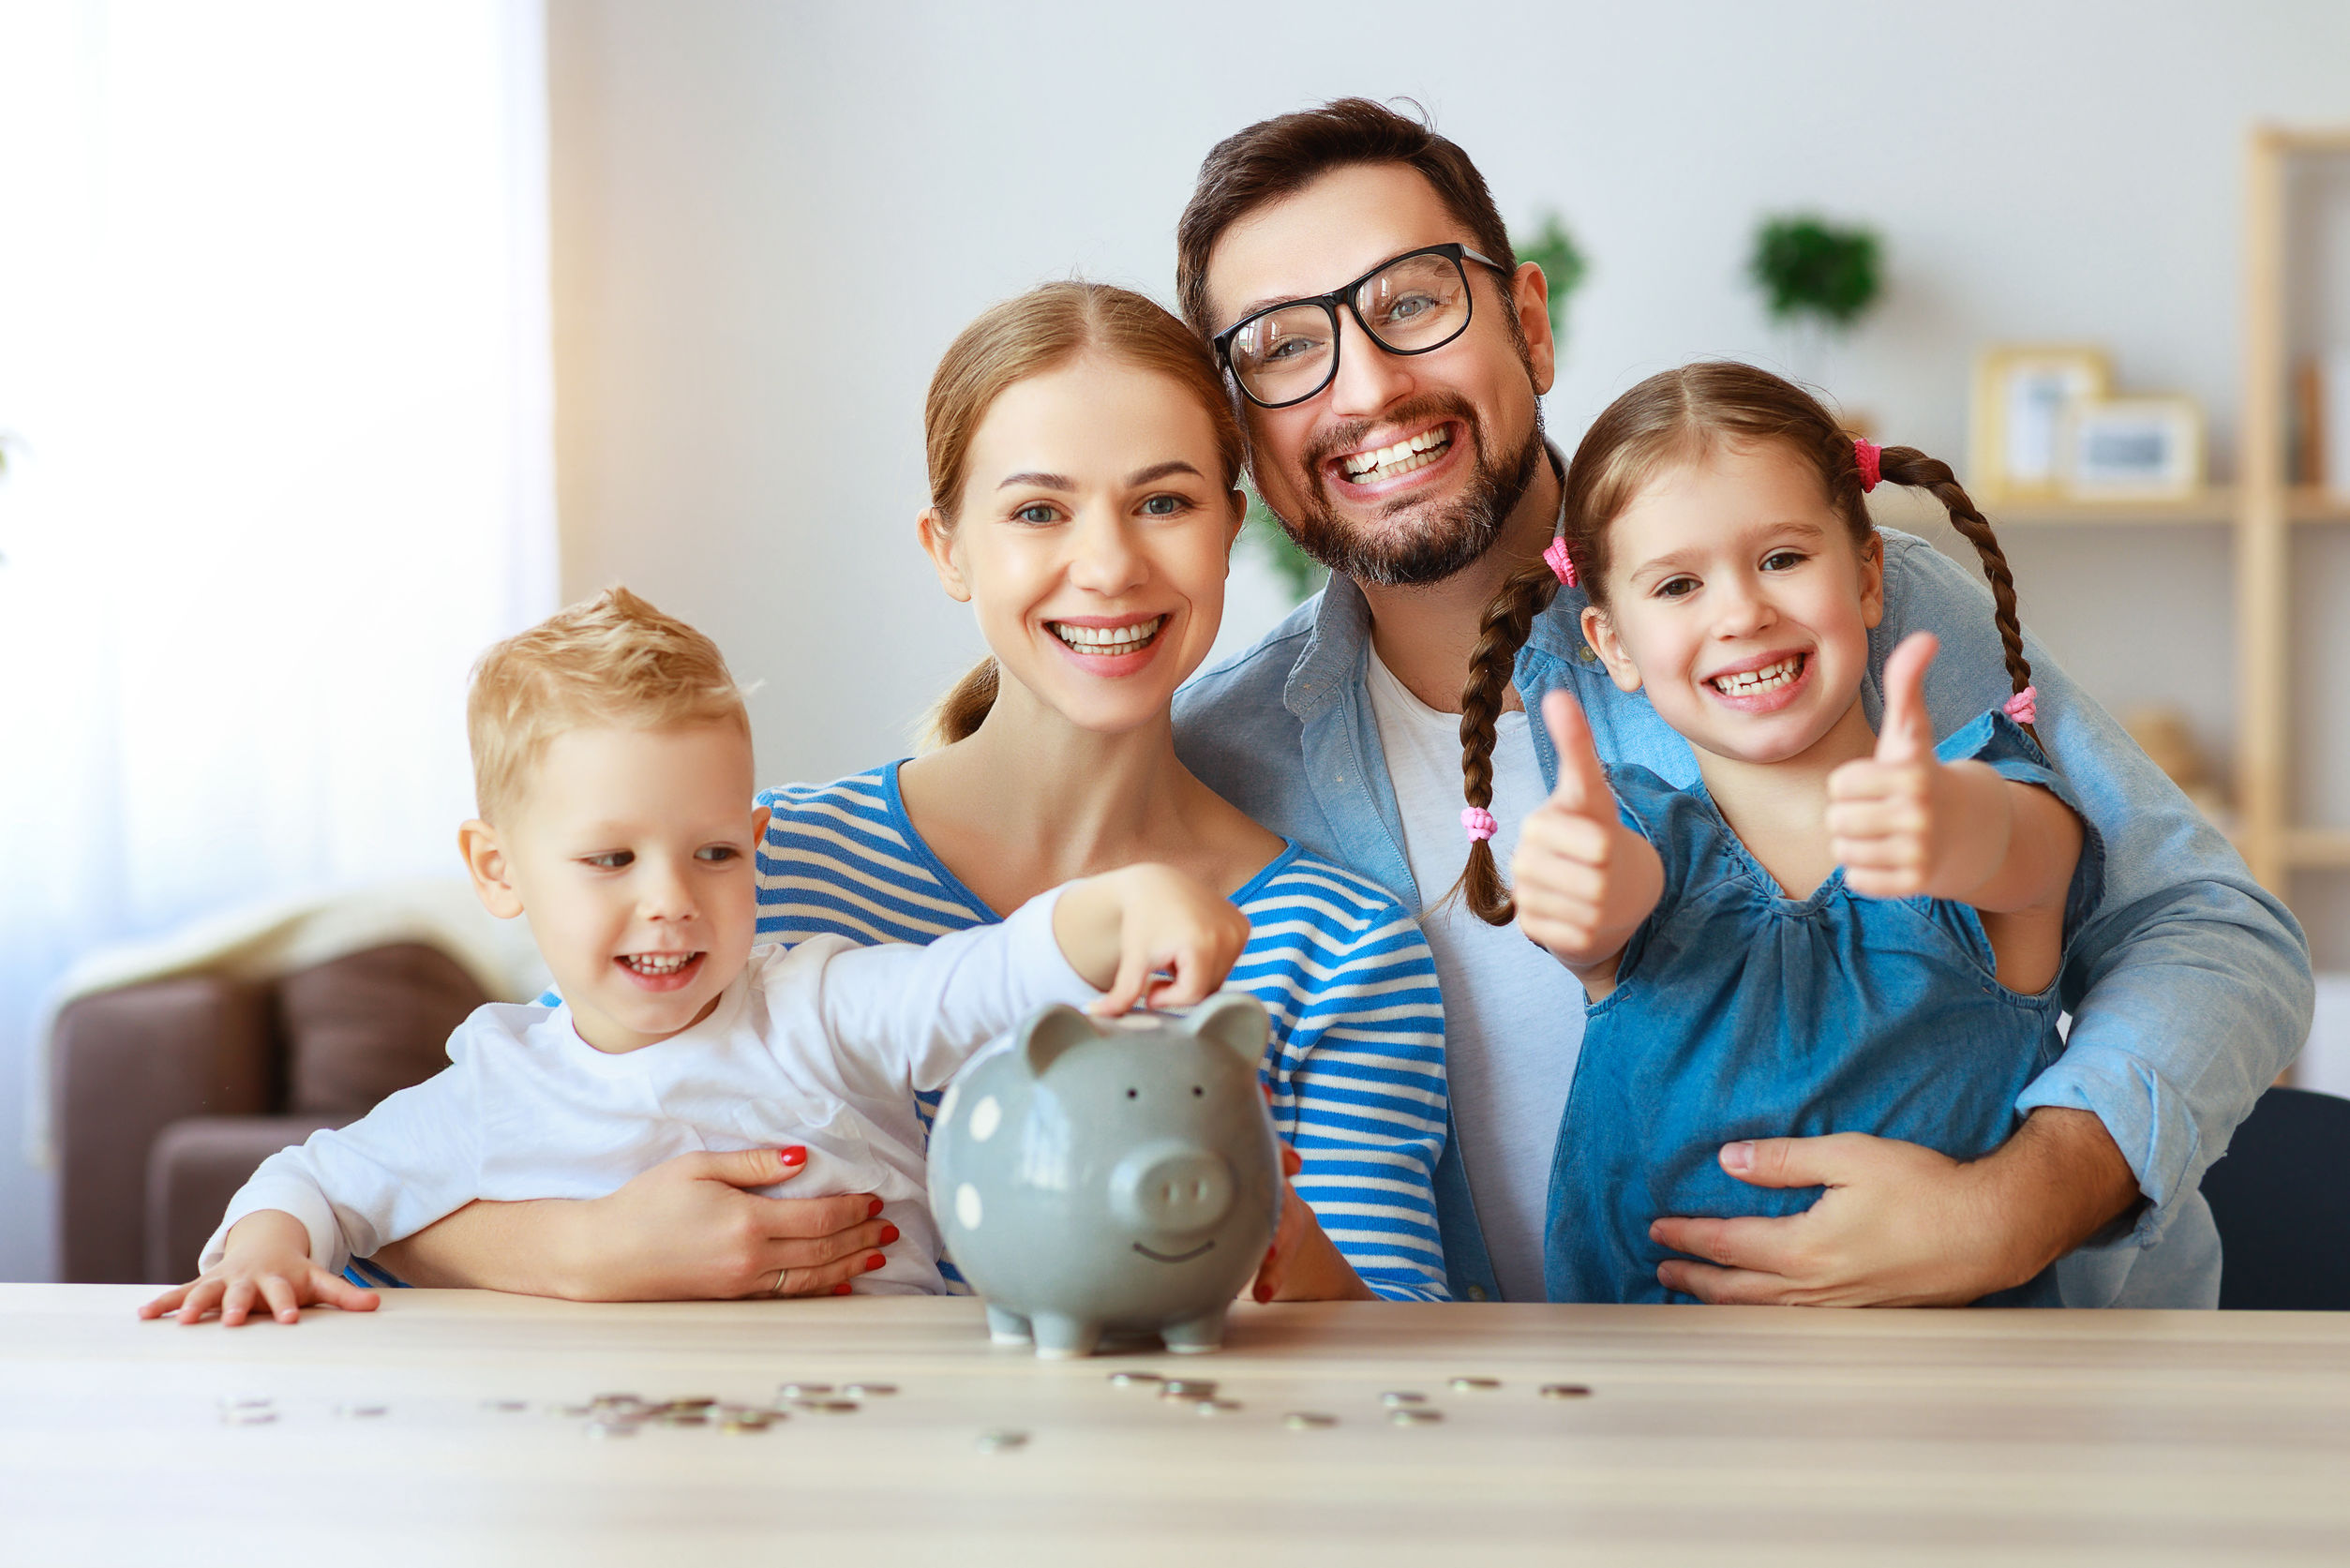 Family of four putting money into a piggy bank